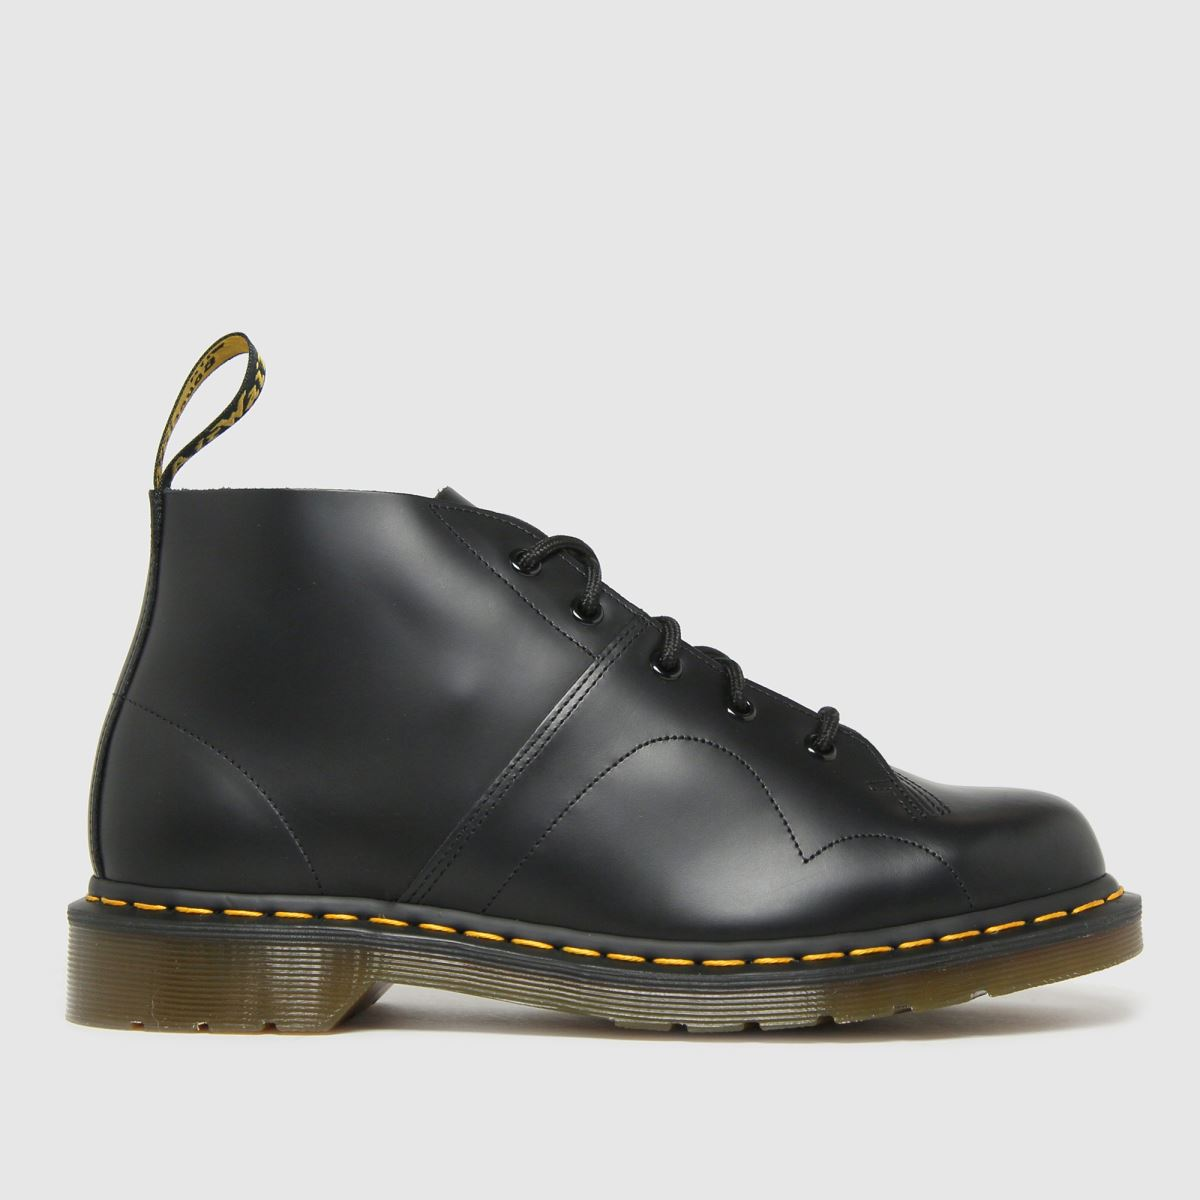 Dr Martens Black Church Boots